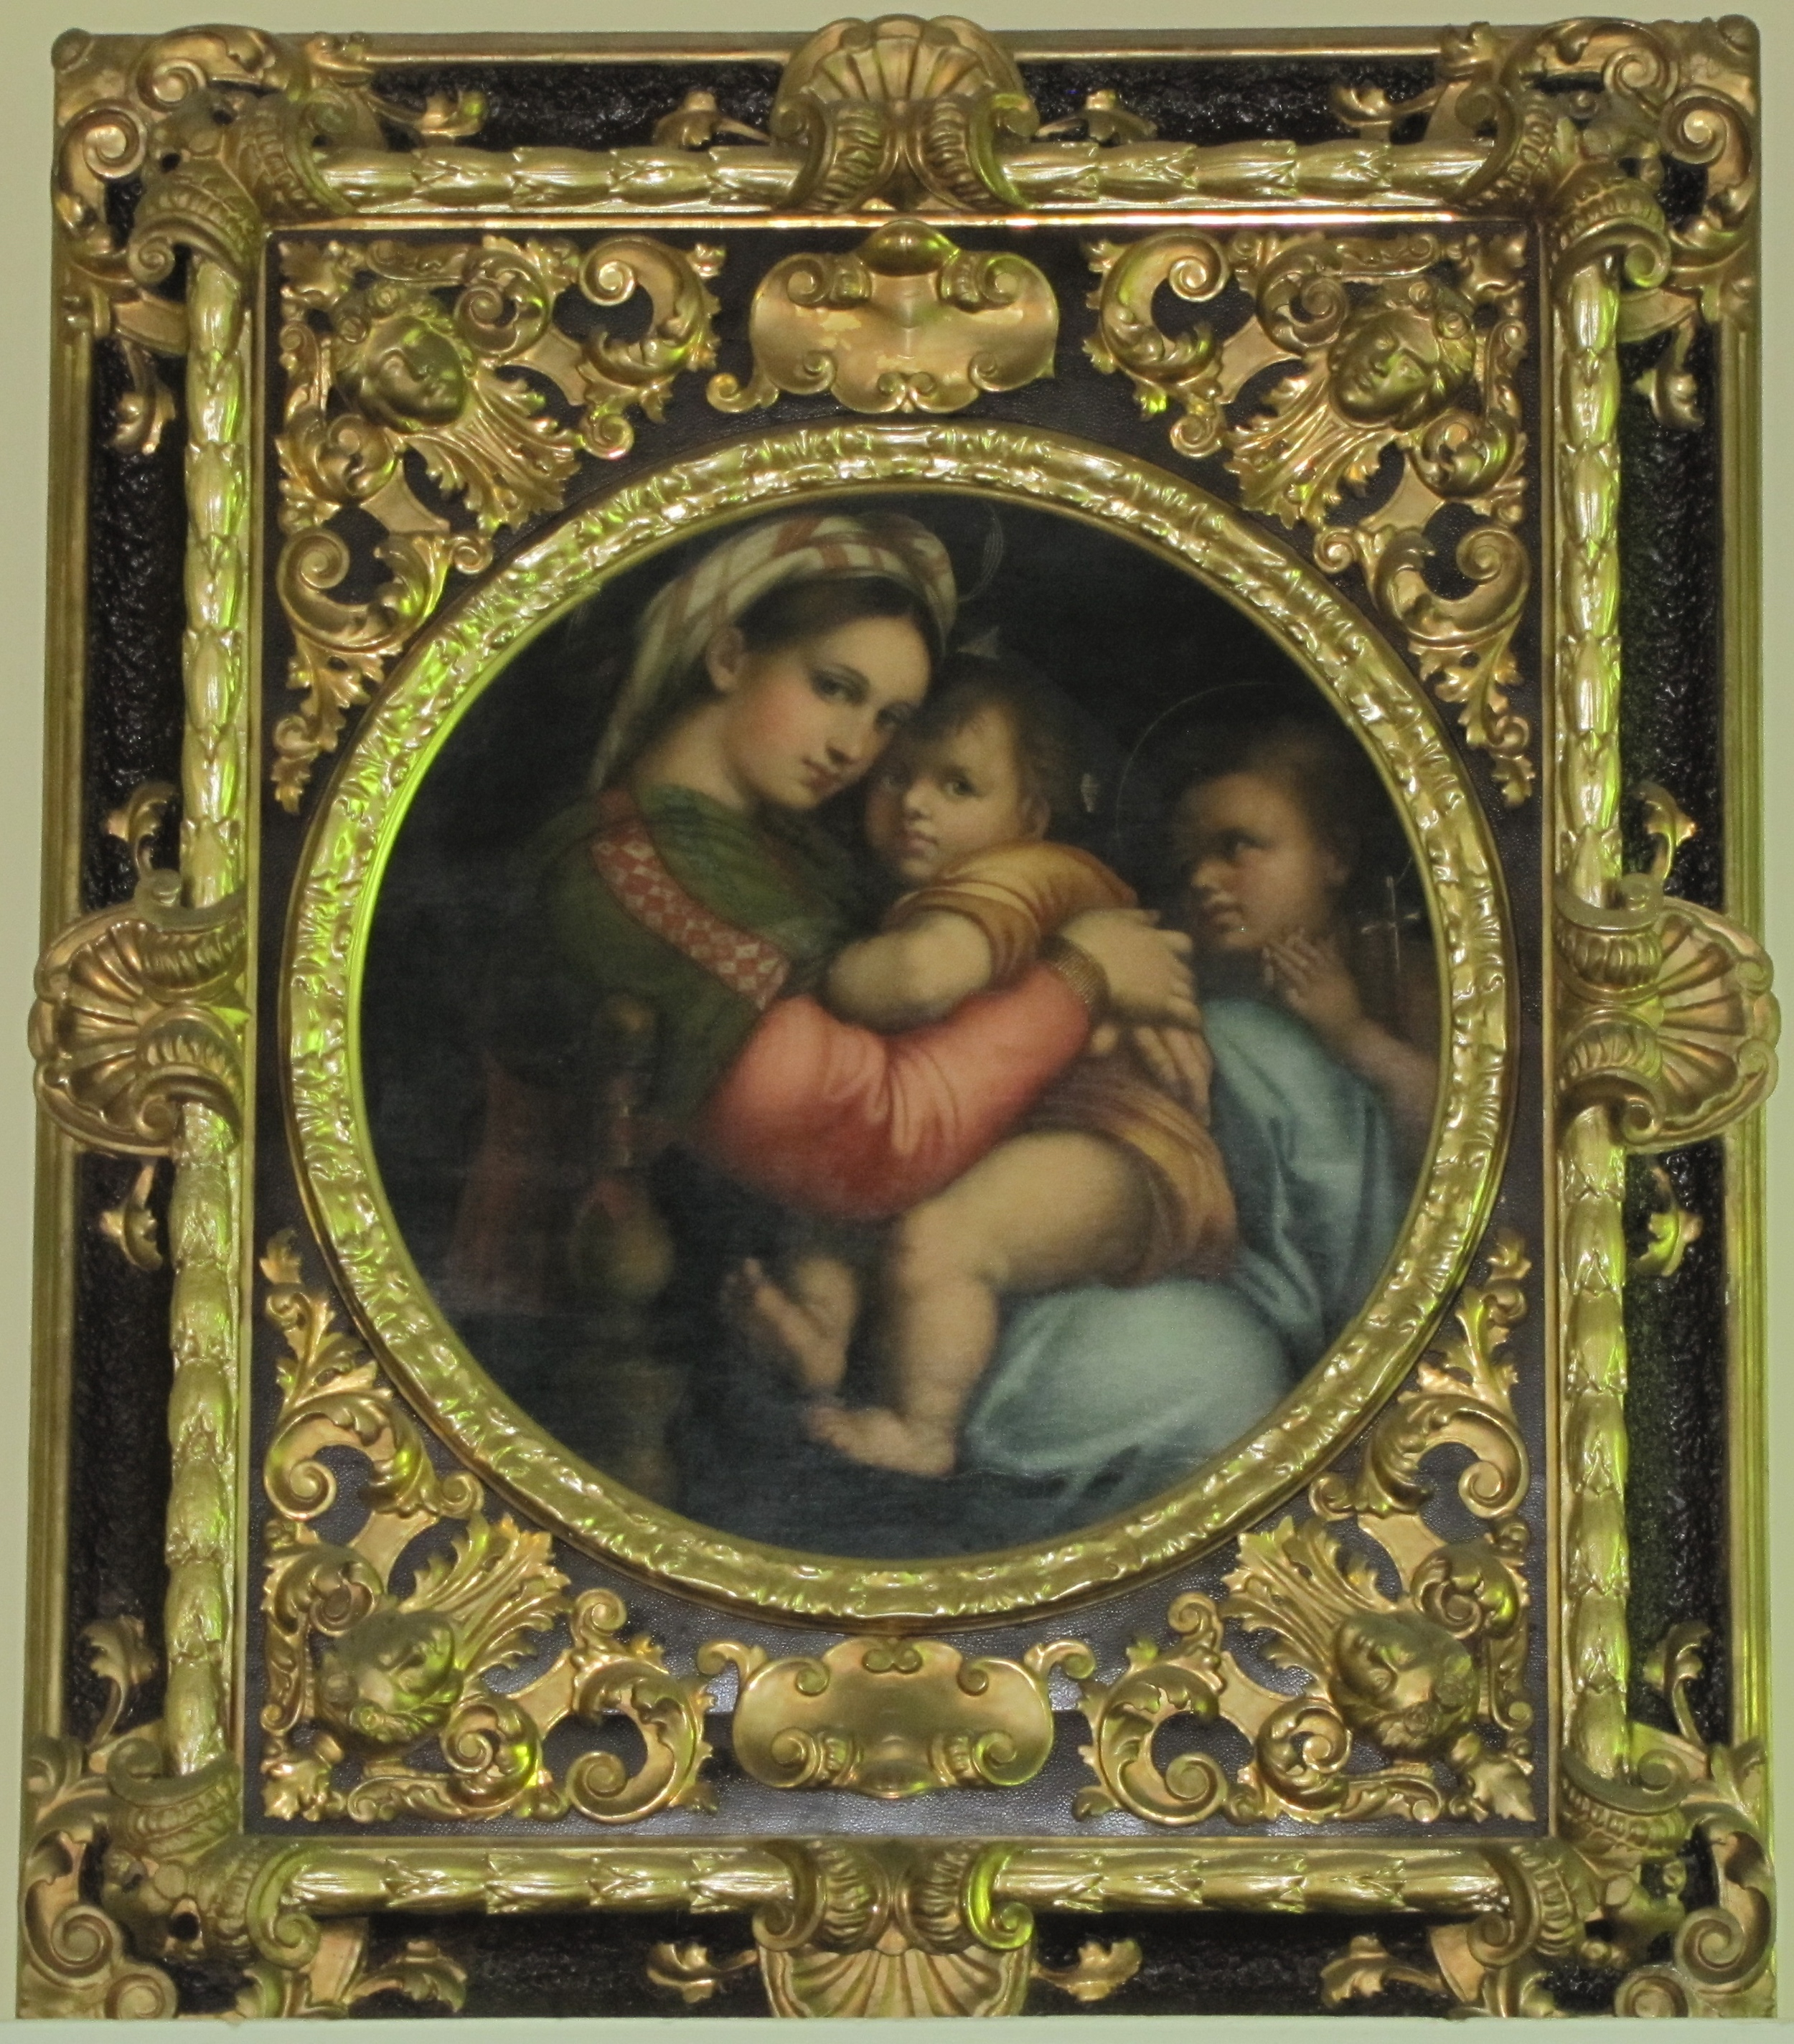 Hanging above the main entrance is this print of the Madonna, MADONNA DELLA SEDIA, taken from the original by Raphael, which hangs in the Pitti Palace in Florence.